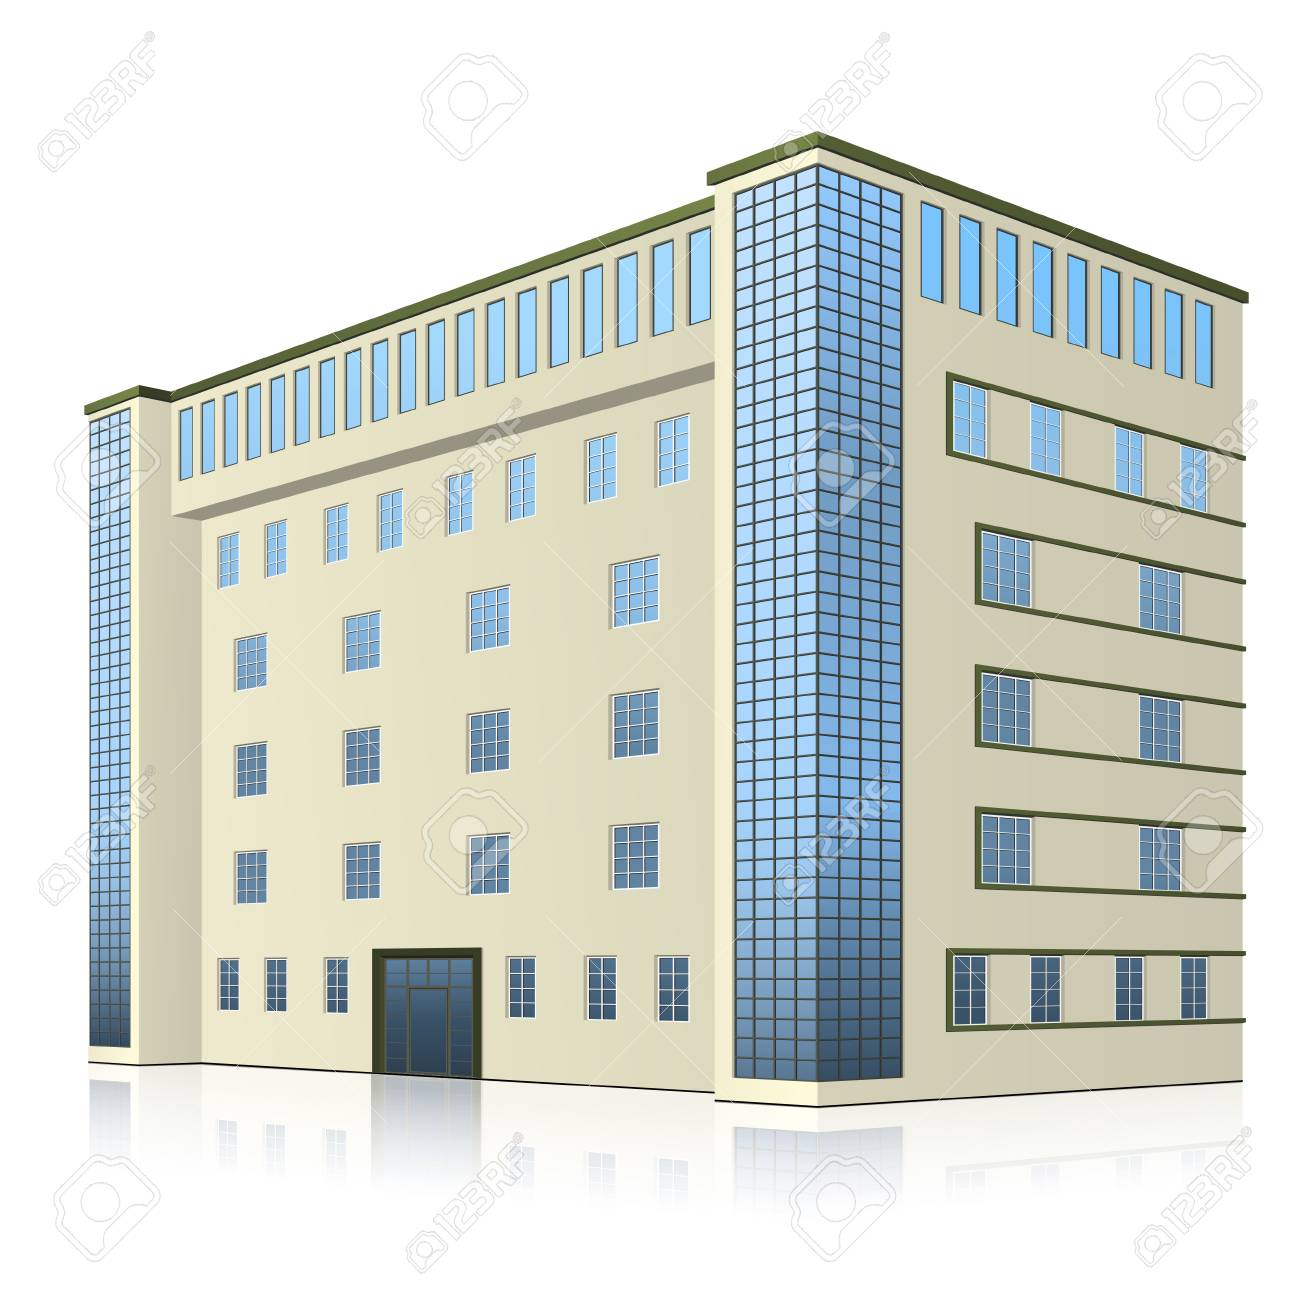 office building with entrance and reflection on white background - 126912796